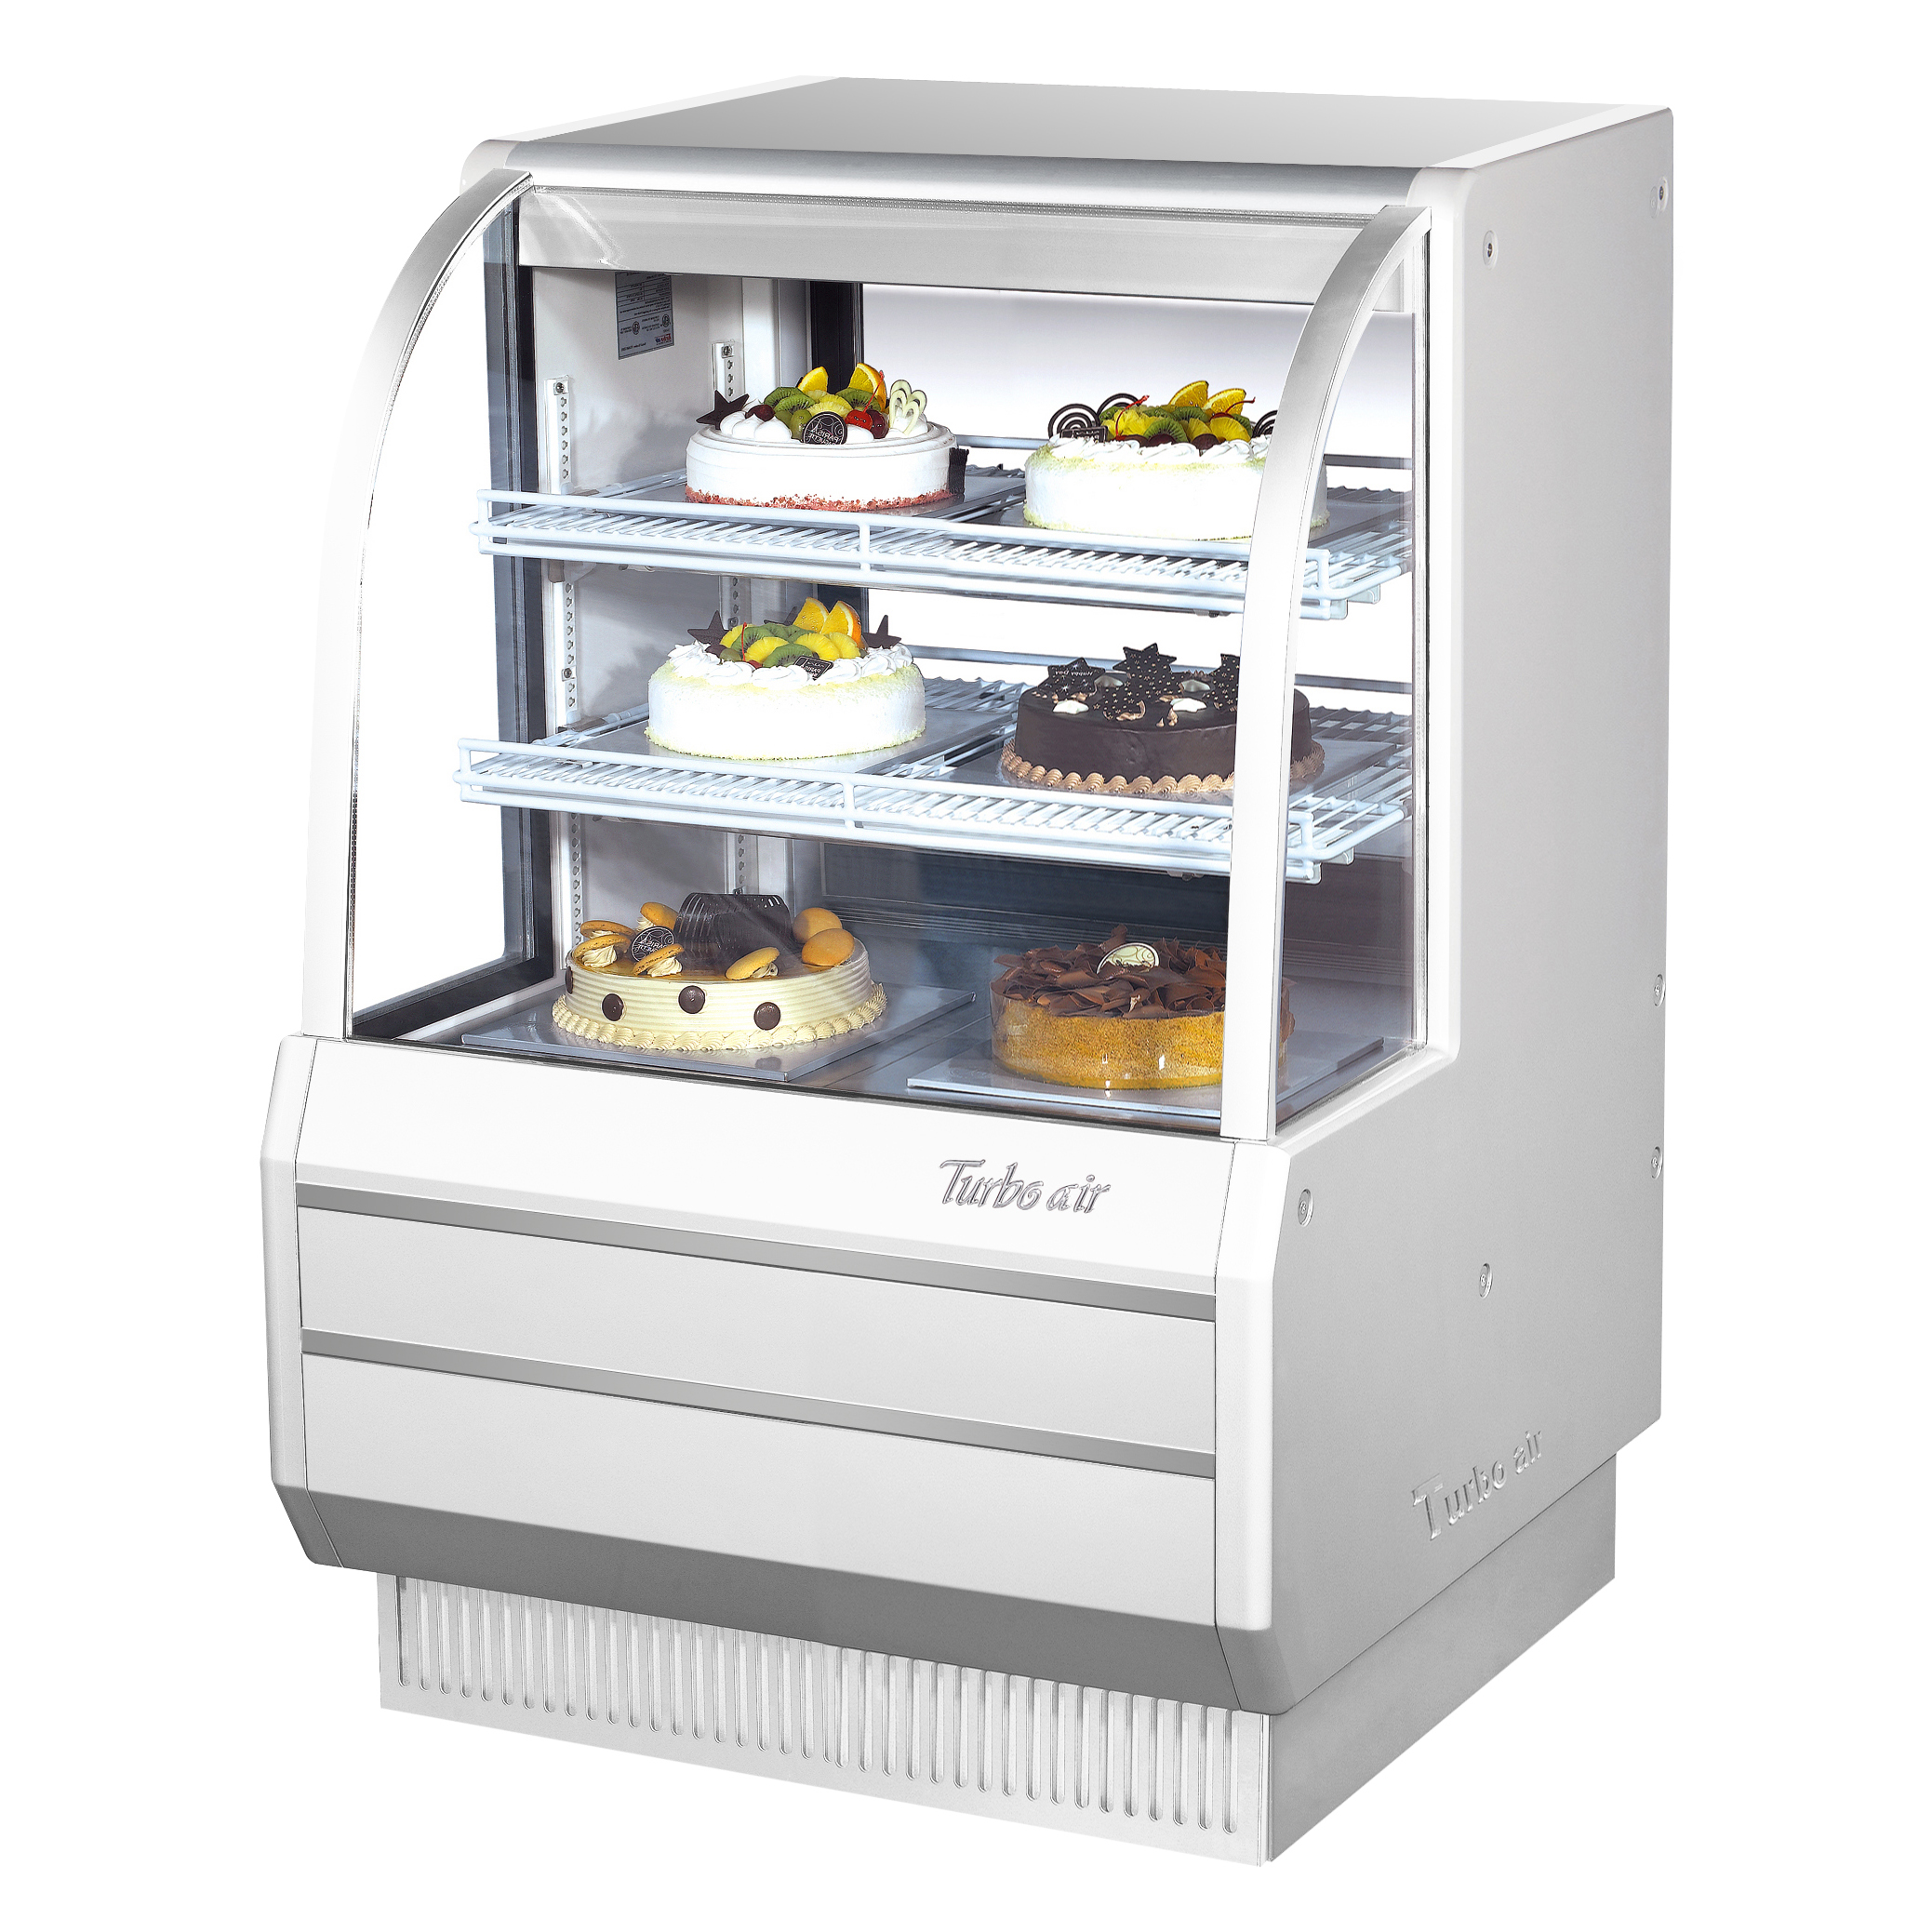 Turbo Air TCGB-36-W(B)-N display case, refrigerated bakery